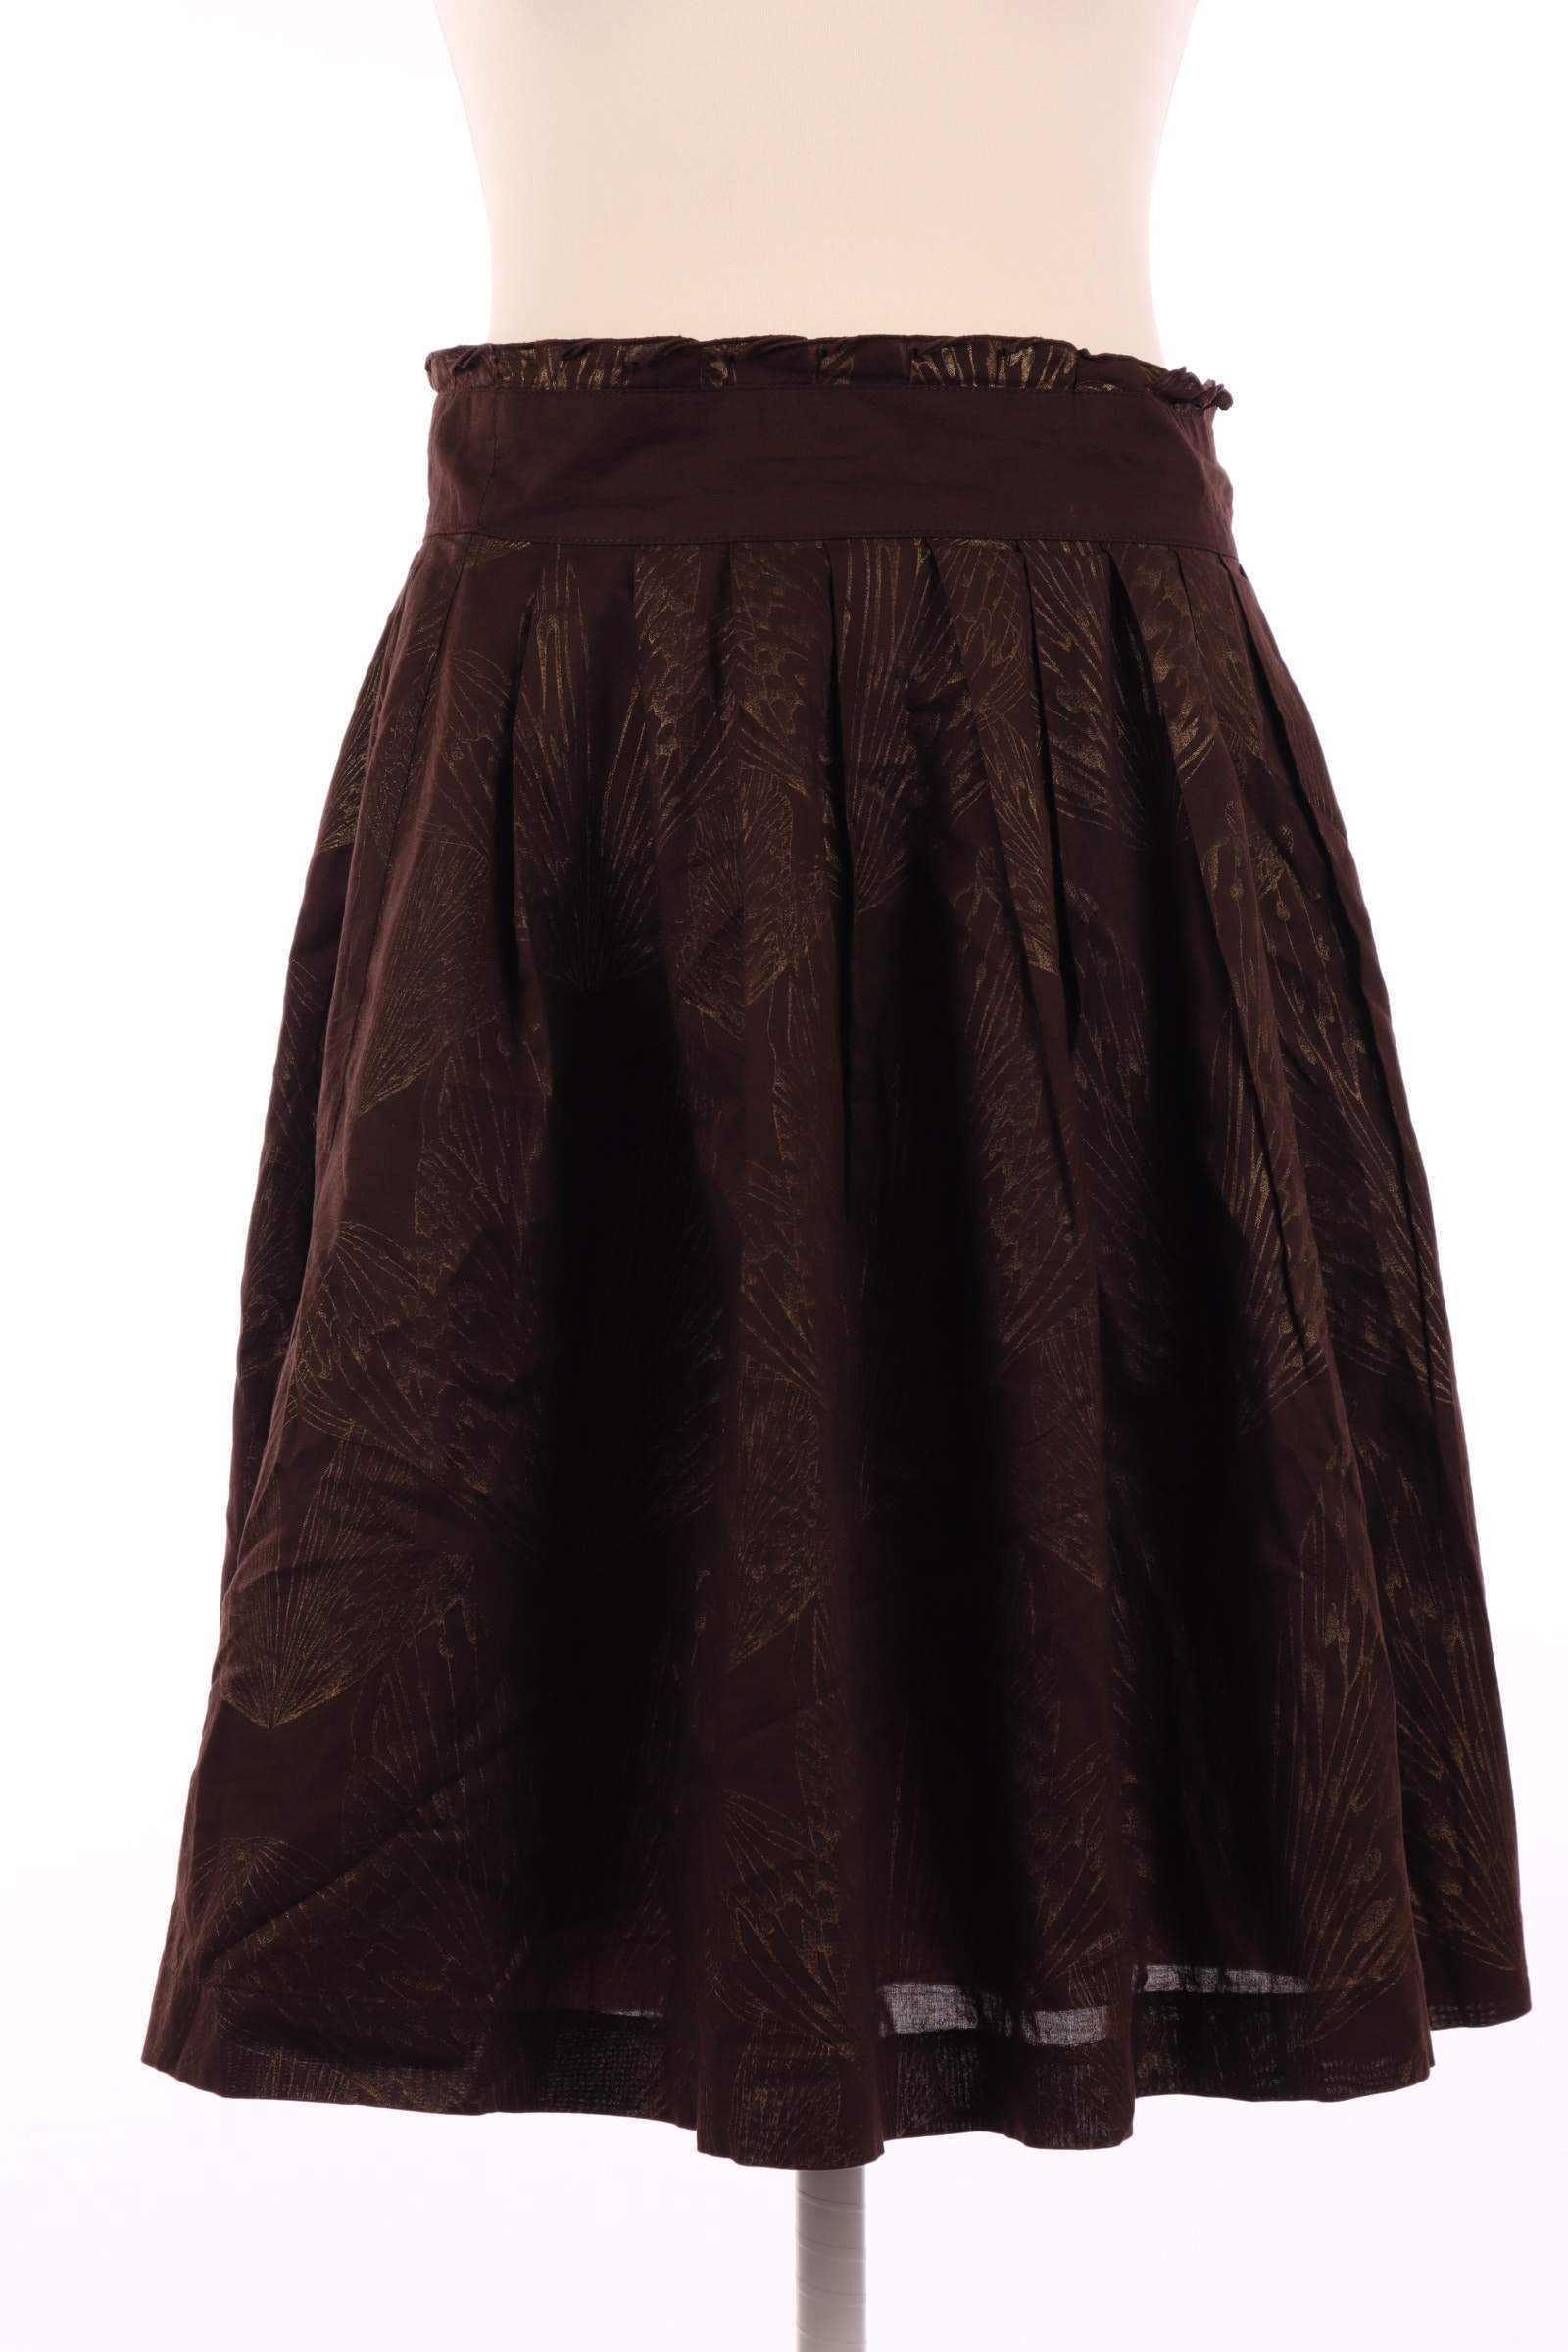 Reserved Brown Skirt - upty.store